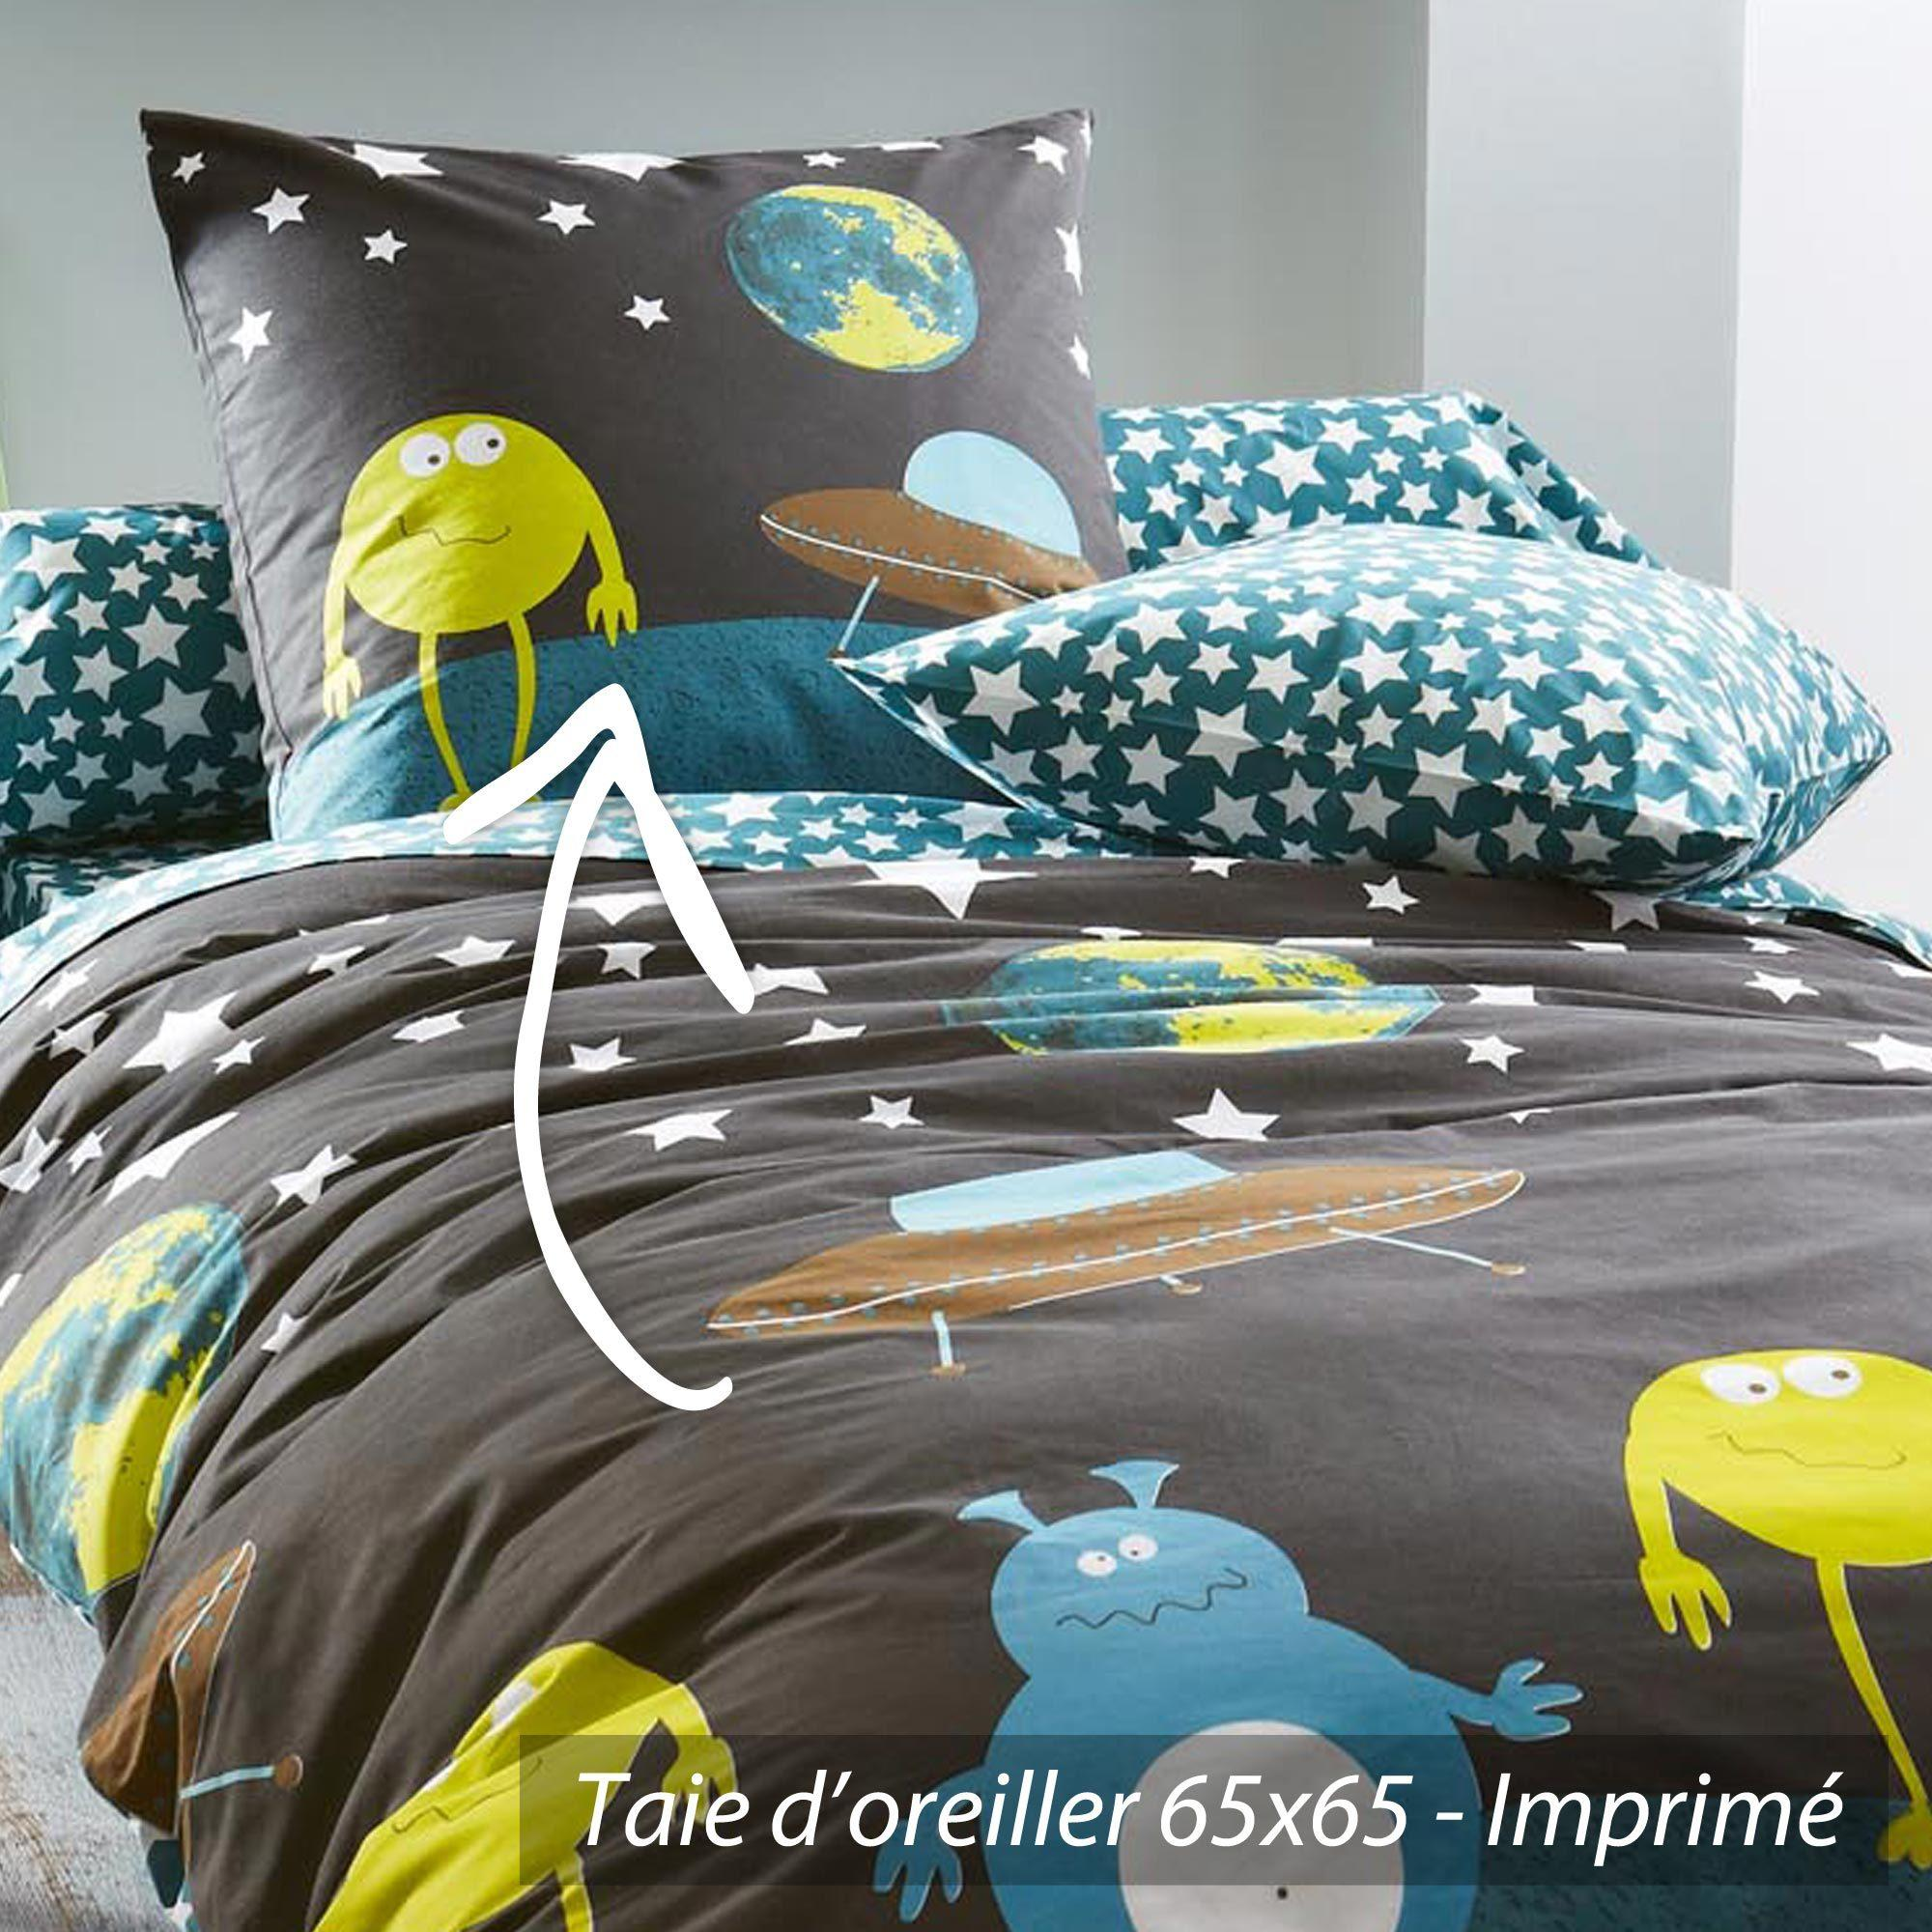 taie d 39 oreiller 65x65 cm monsters linnea vente de linge de maison. Black Bedroom Furniture Sets. Home Design Ideas